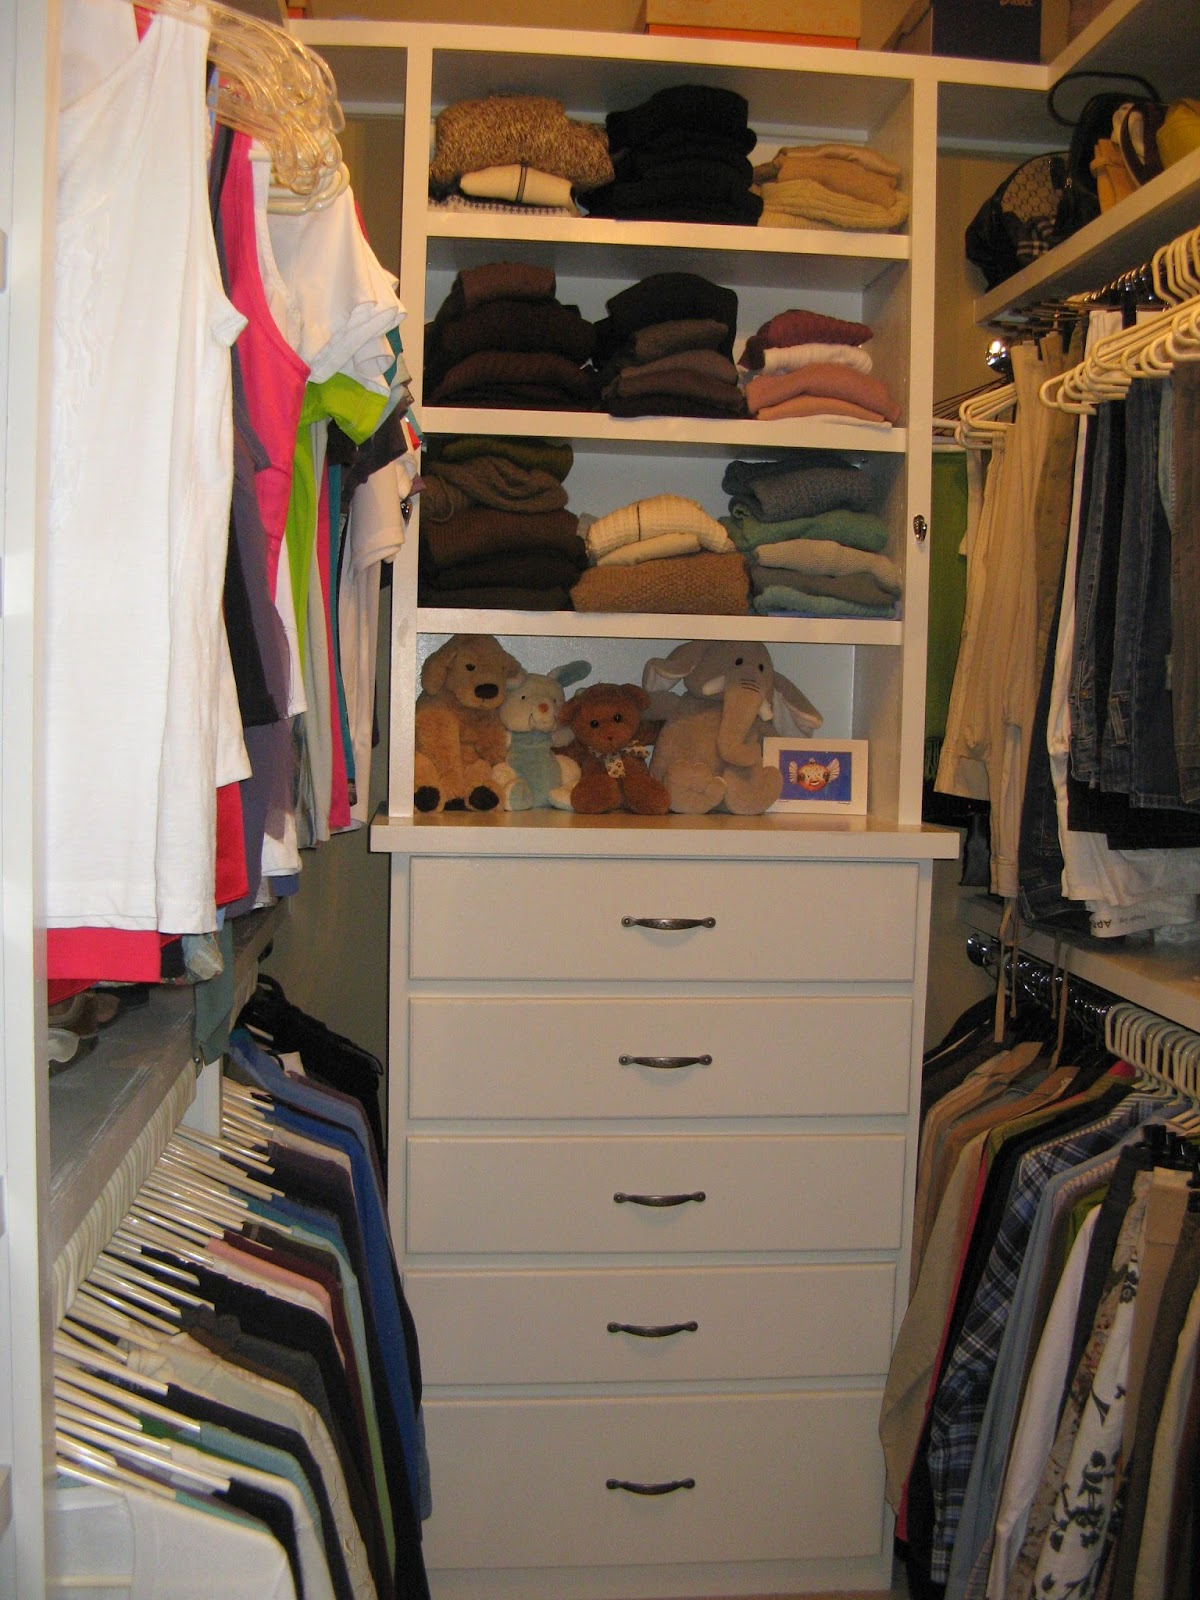 14 Closet Organizing Tips - DRAWERS